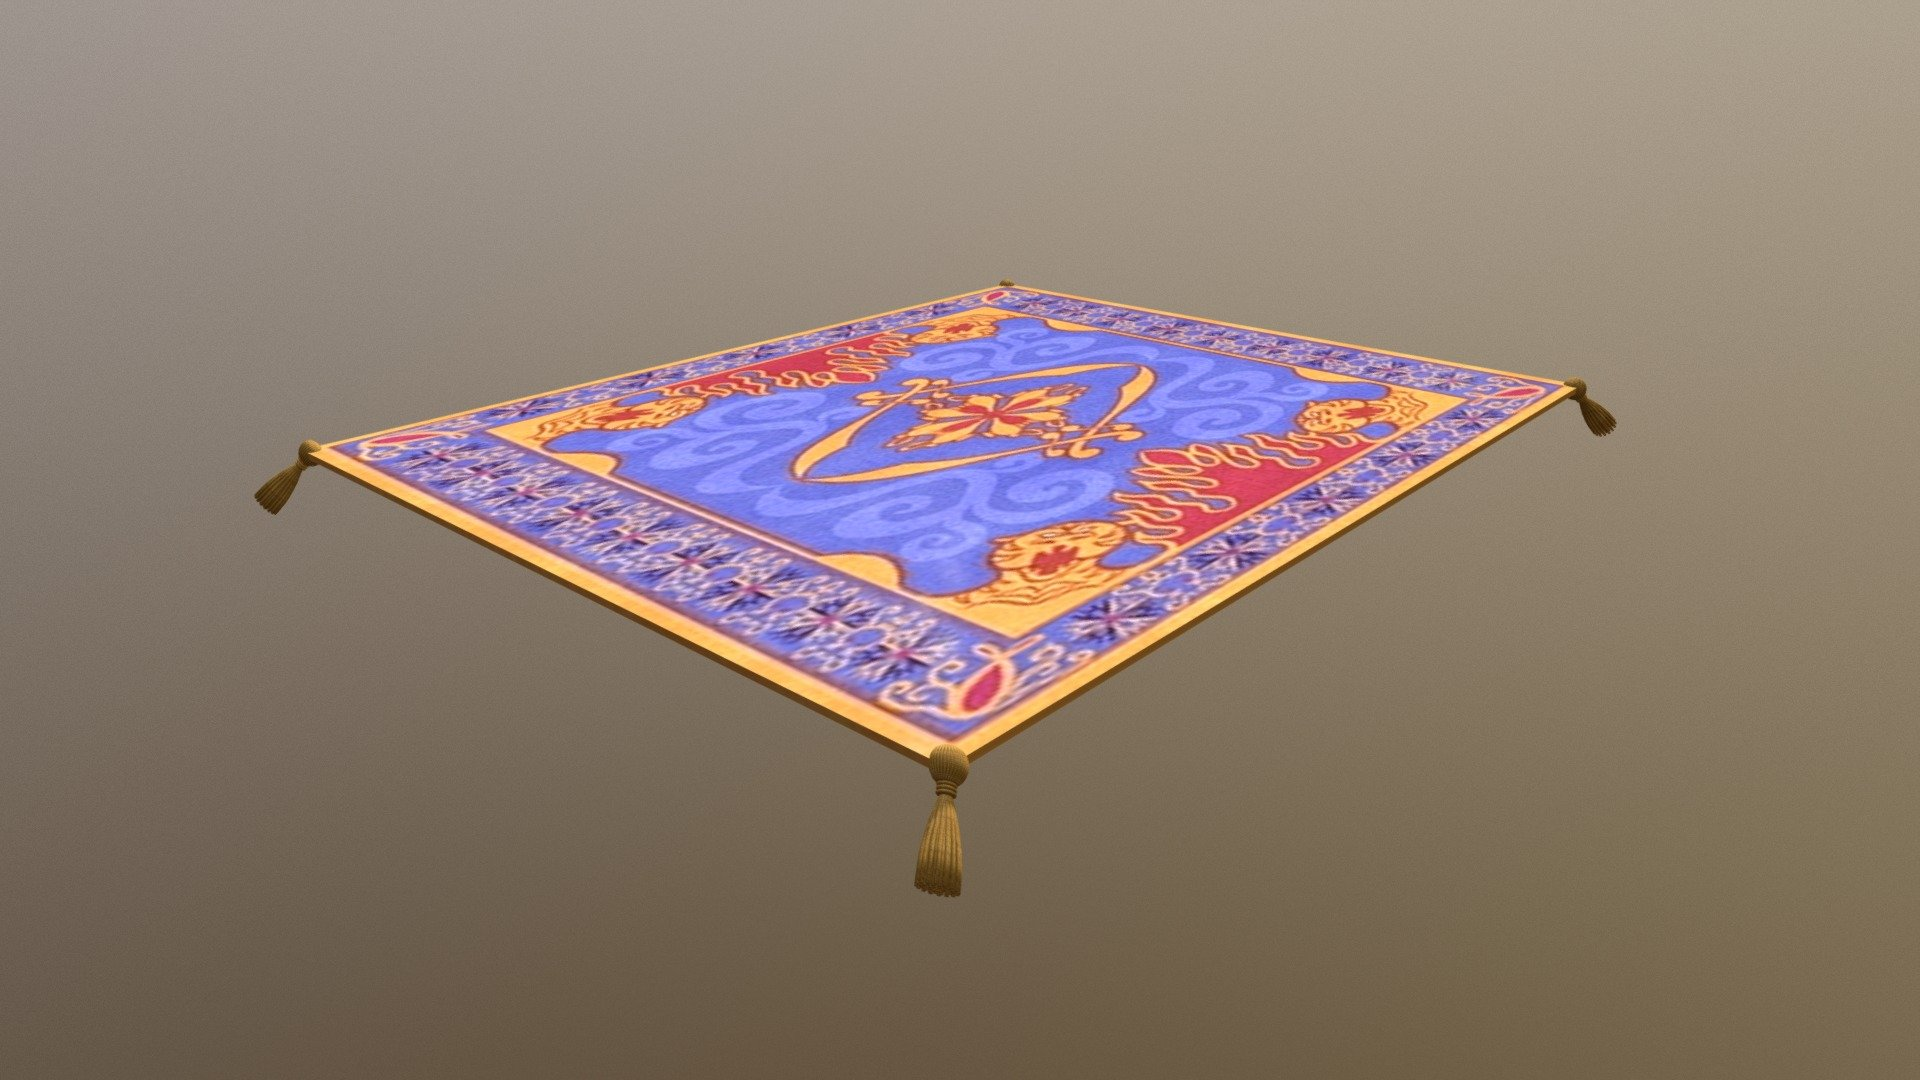 Aladdin S Magic Carpet Download Free 3d Model By Kremit